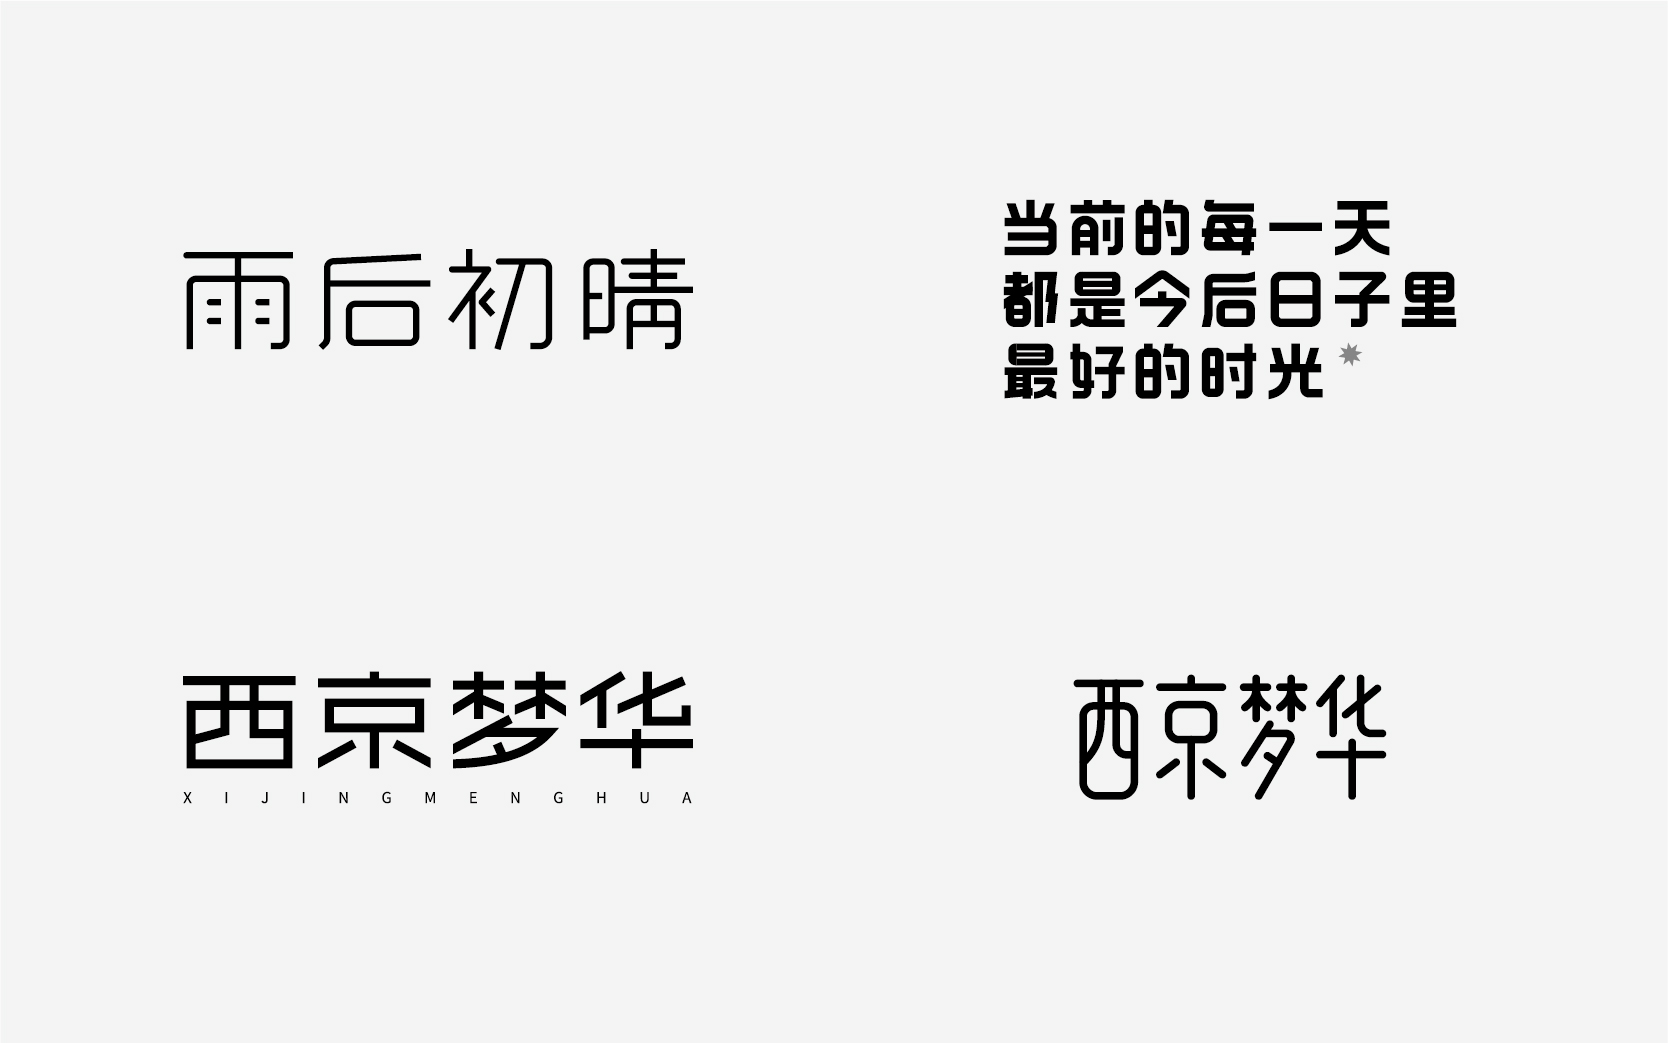 11P Collection of the latest Chinese font design schemes in 2021 #.27